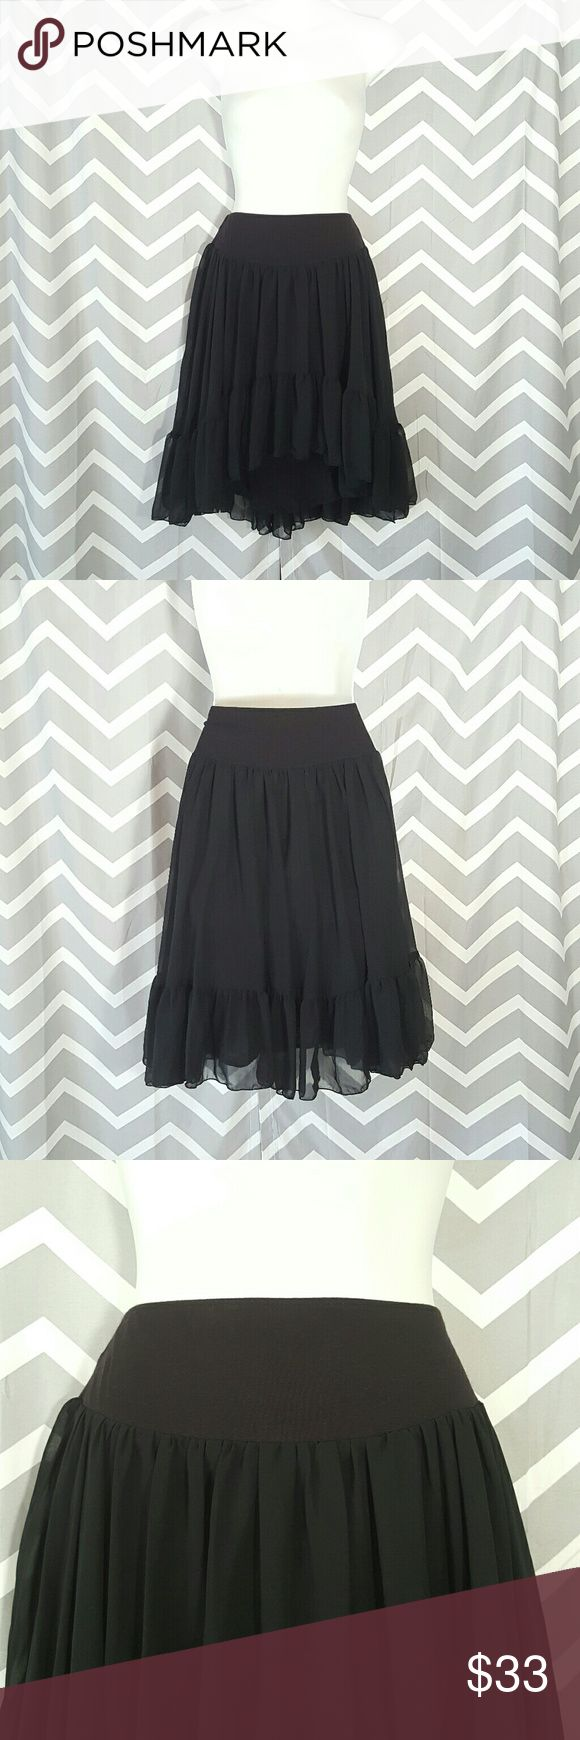 Free People black asymmetrical skirt Pre-owned in good used condition... only tiny small flaw, it has a snag on the left side (see last picture) really isn't noticeable, and there's no hole/rip. Does have lining, and the front is higher than the back. The waistline stretches, we all love a skirt with some stretch around the waist :)  The waist is a different shade of black than the bottom.  Shell 100% polyester  Lining 100% rayon Free People Skirts Asymmetrical